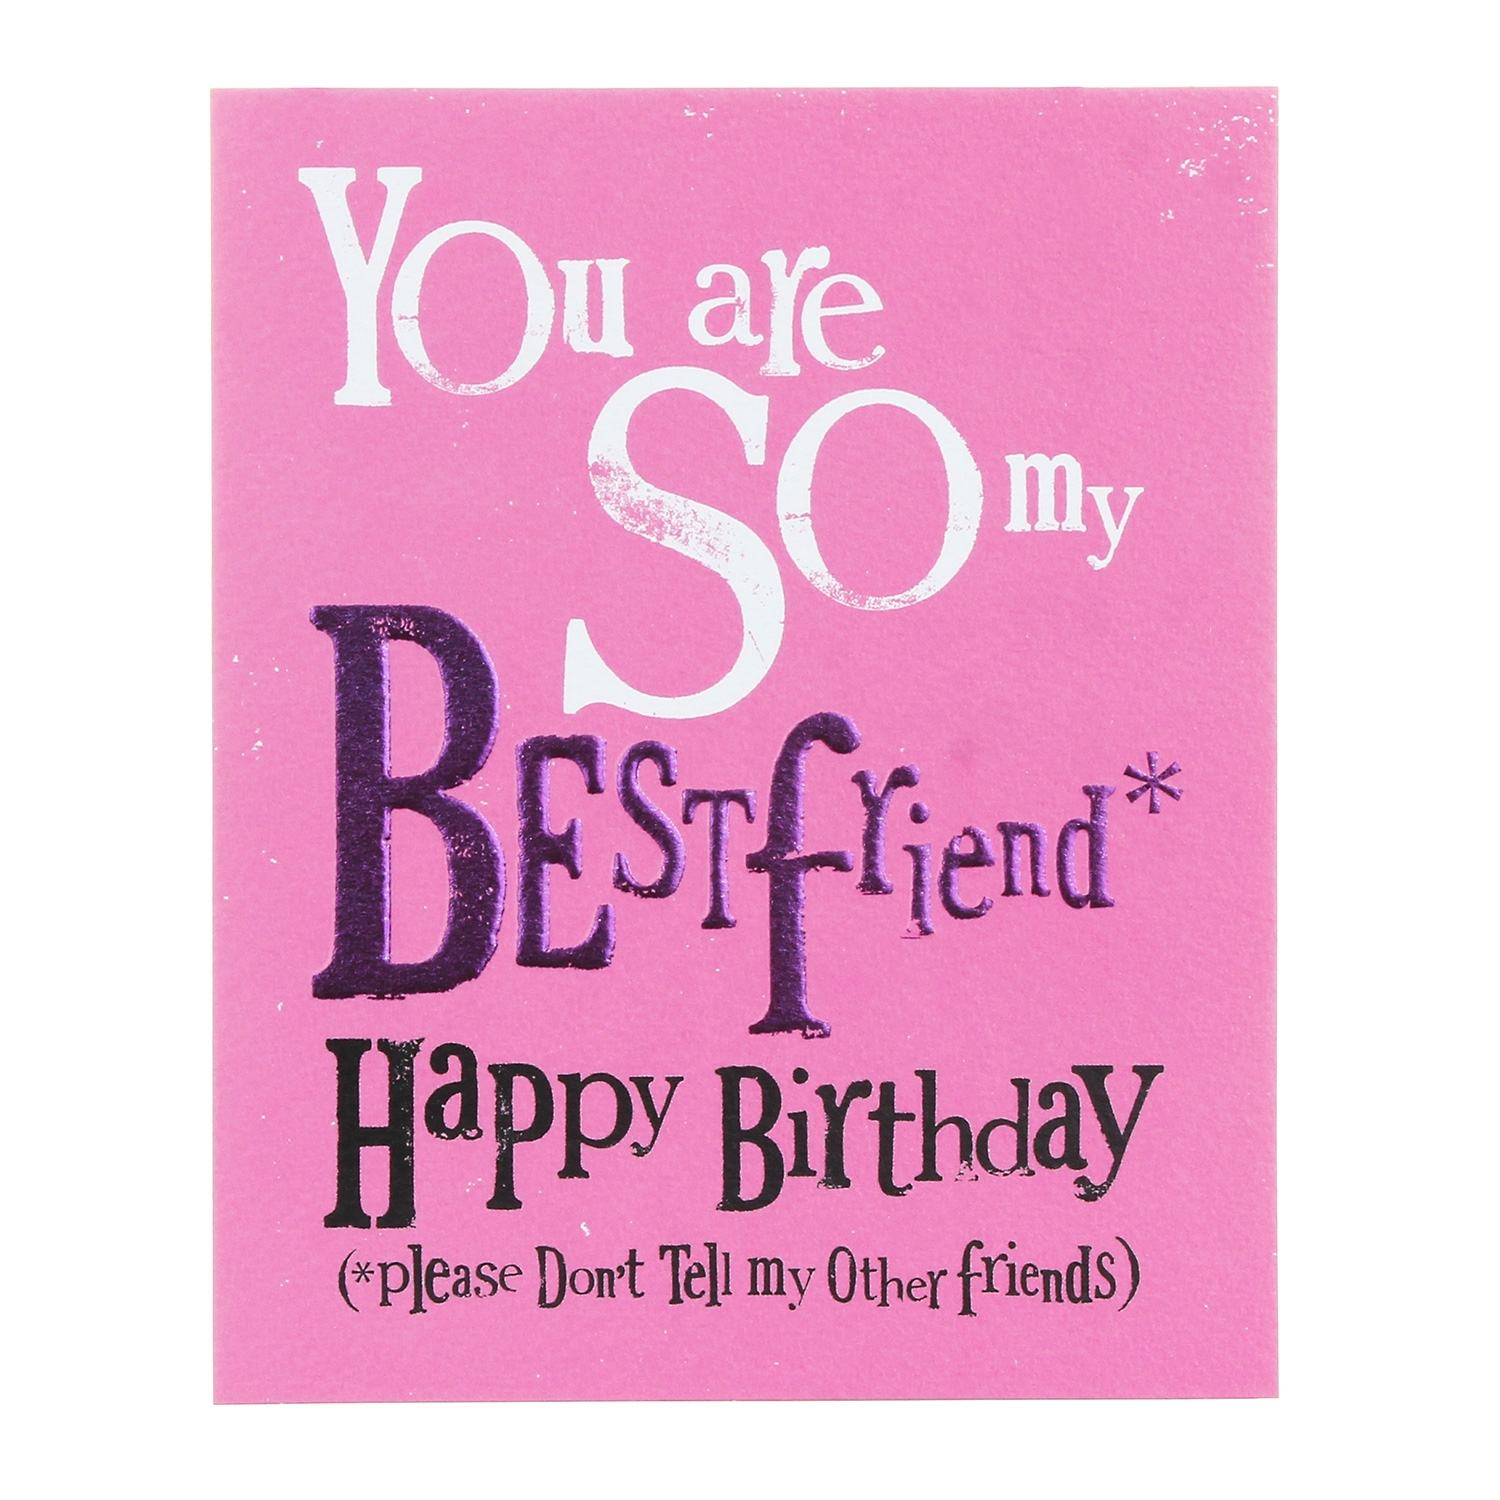 The Bright Side So My Best Friend Happy Birthday Greetings Card Temptation Gifts